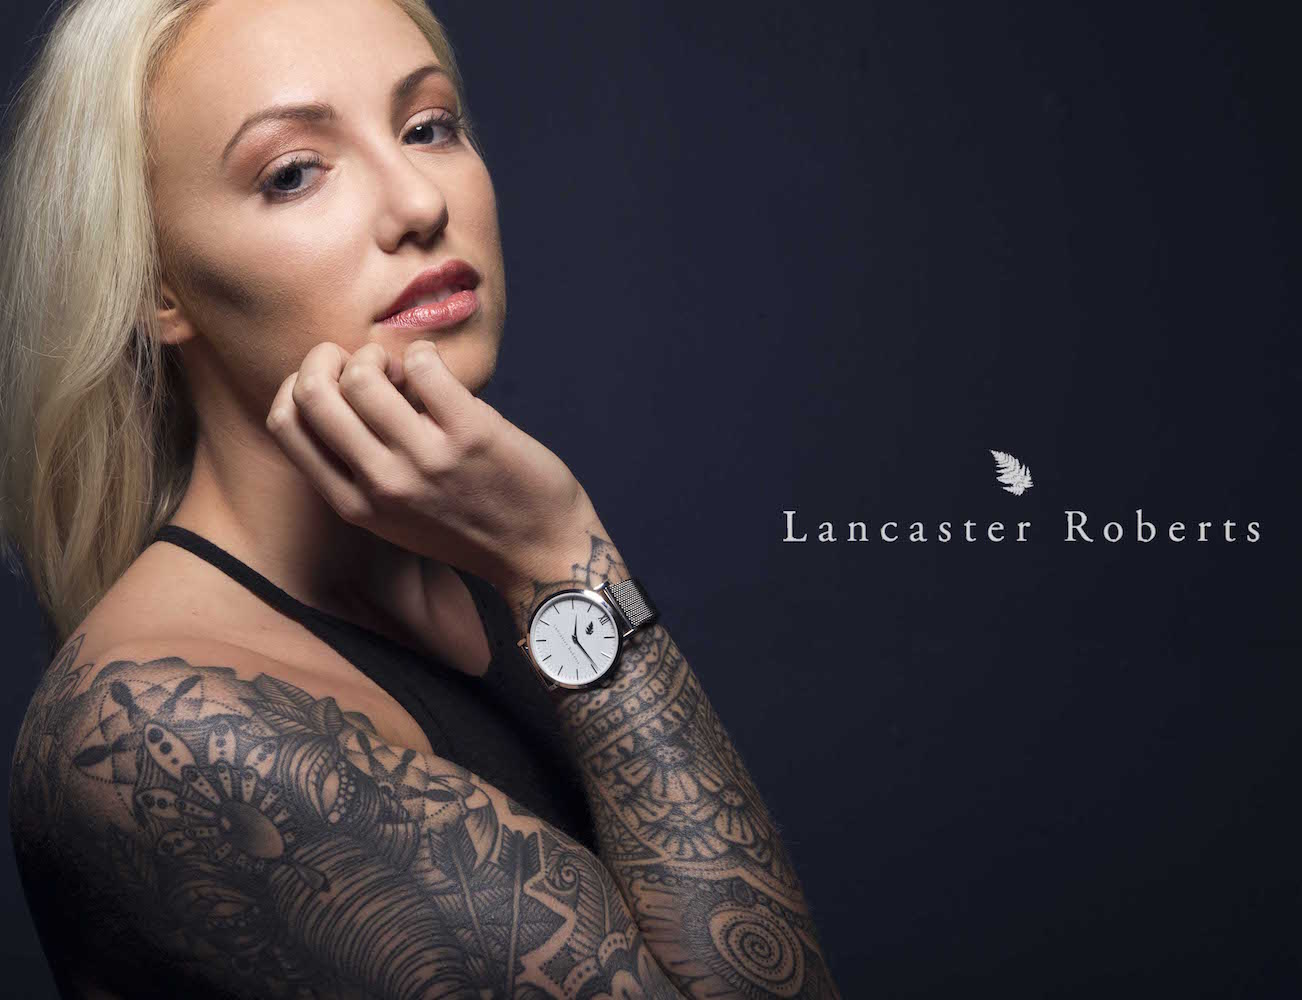 Lancaster Roberts' First Luxury Watch Collection